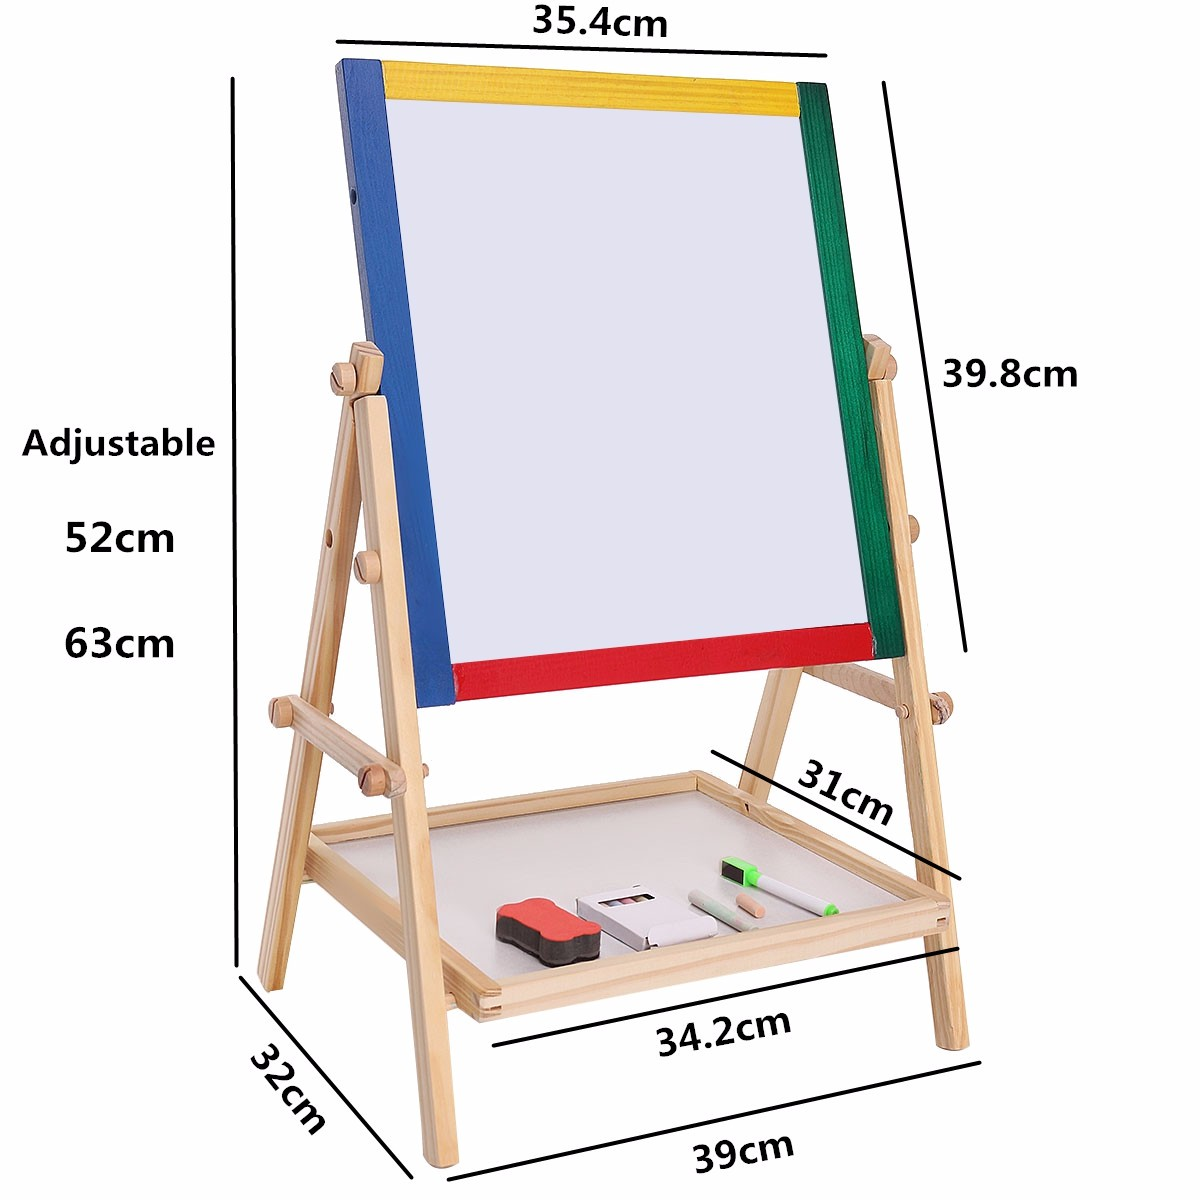 adjustable children kids 2 in 1 black white wooden easel chalk drawing board educational toy - Whiteboard Easel